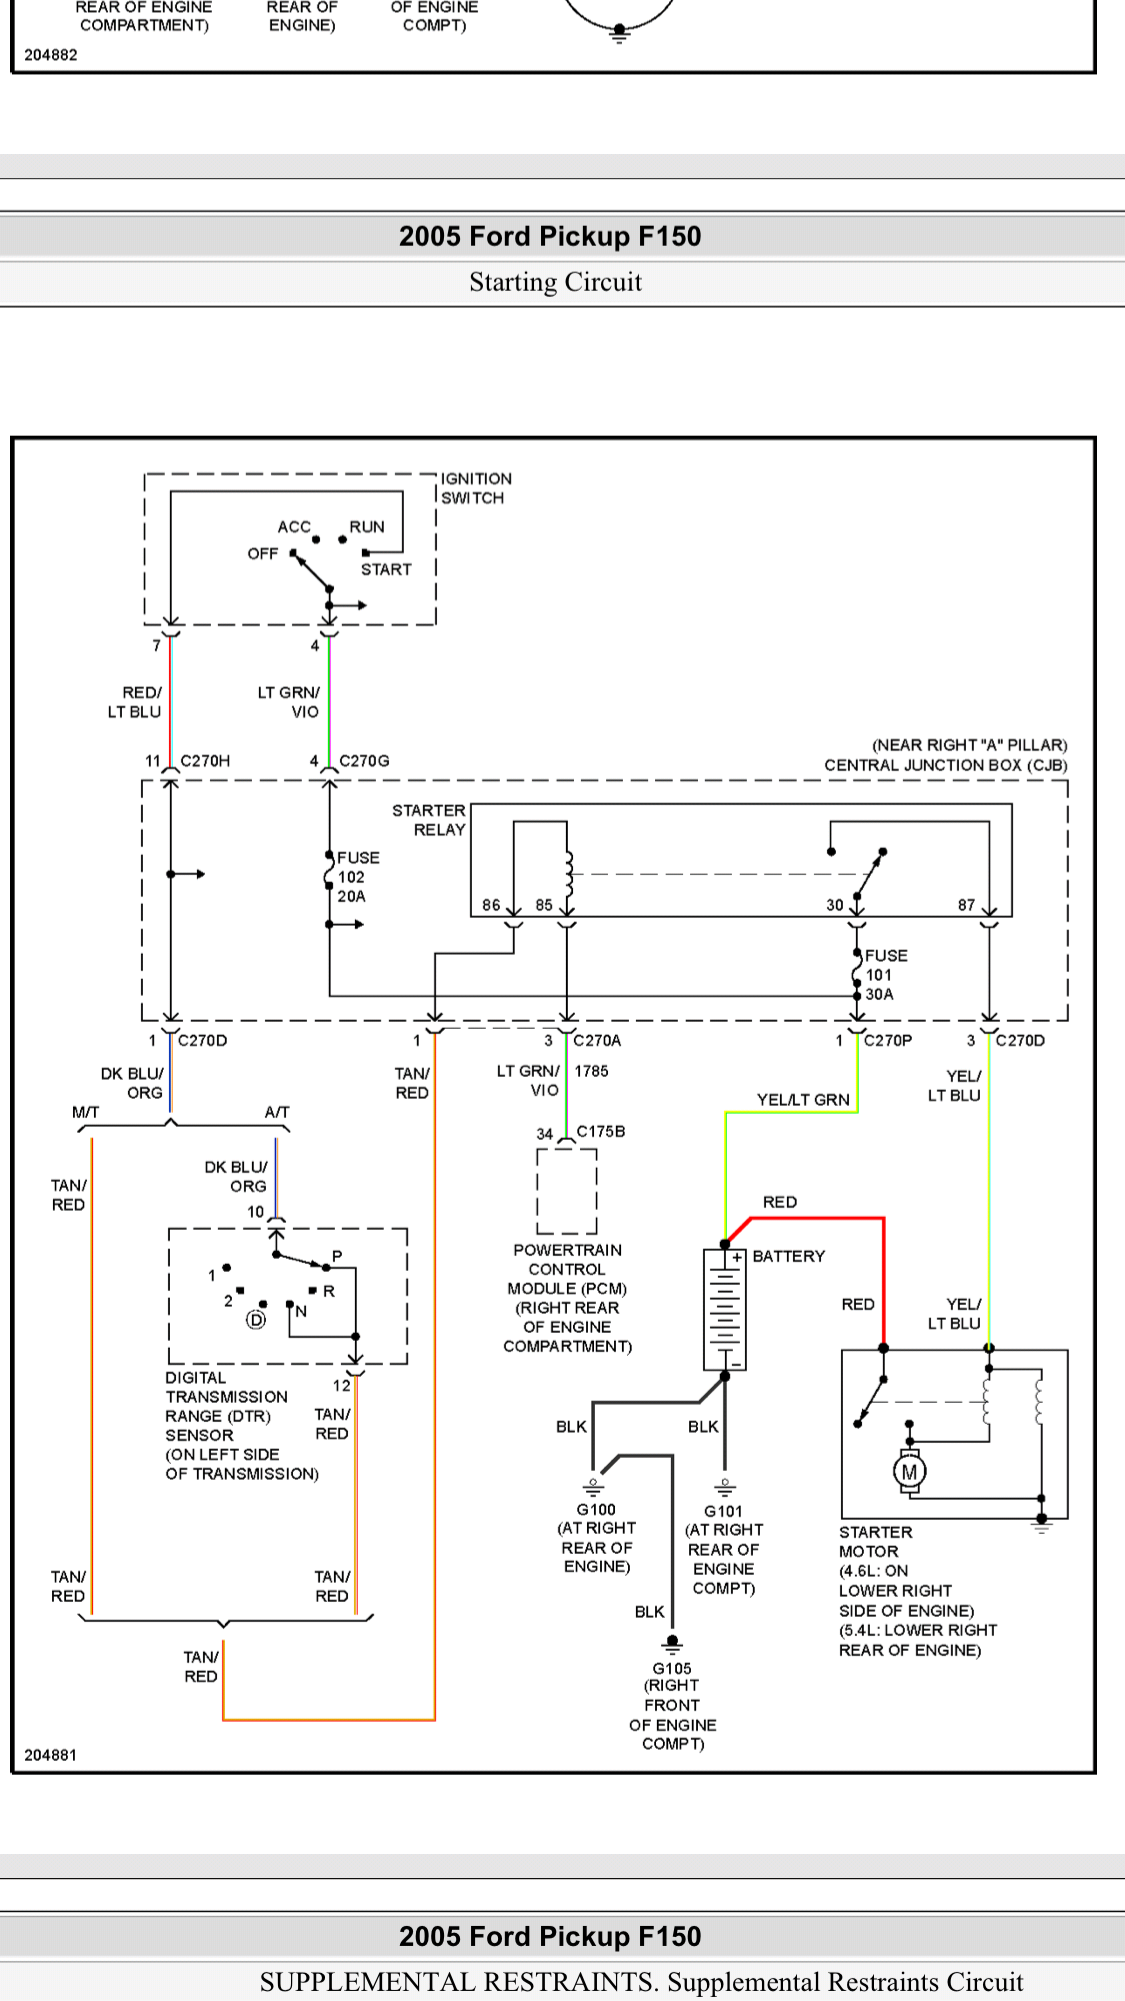 Neutral Safety Switch Wiring Diagram C3 Harley Wiring Diagram For Wiring Diagram Schematics